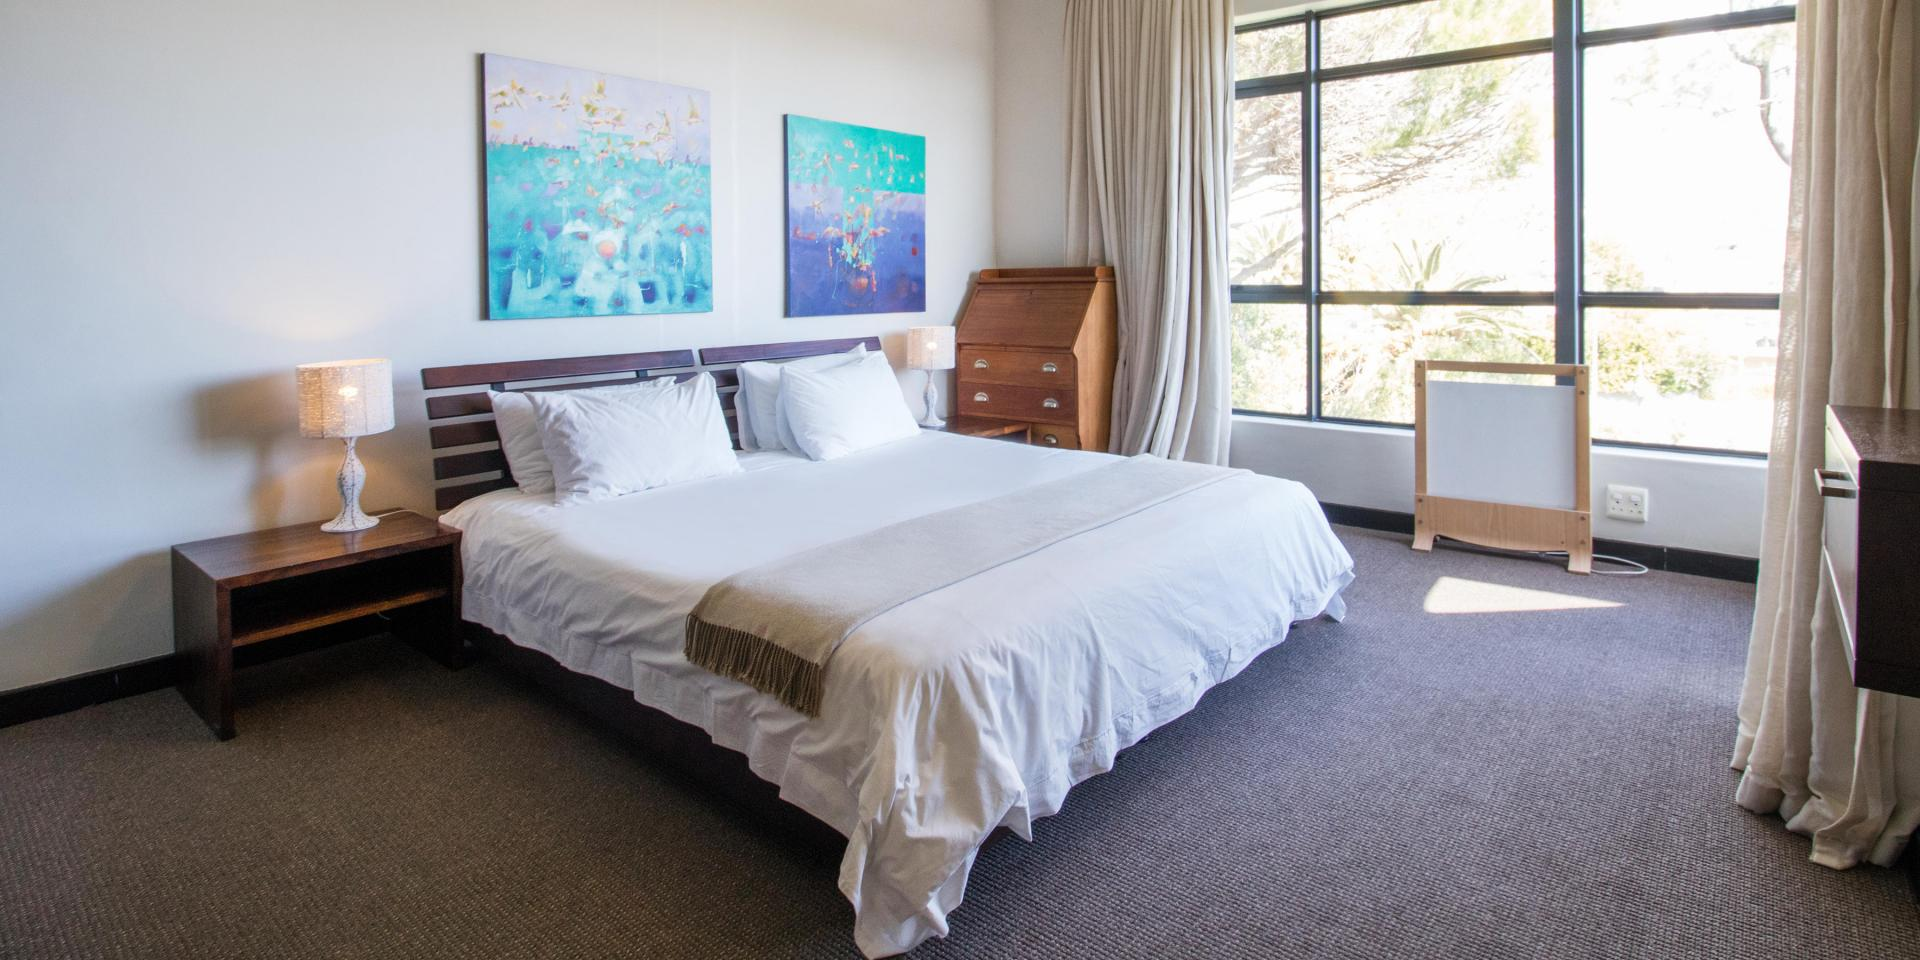 Cosy room at The Glen Apartments - Citybase Apartments